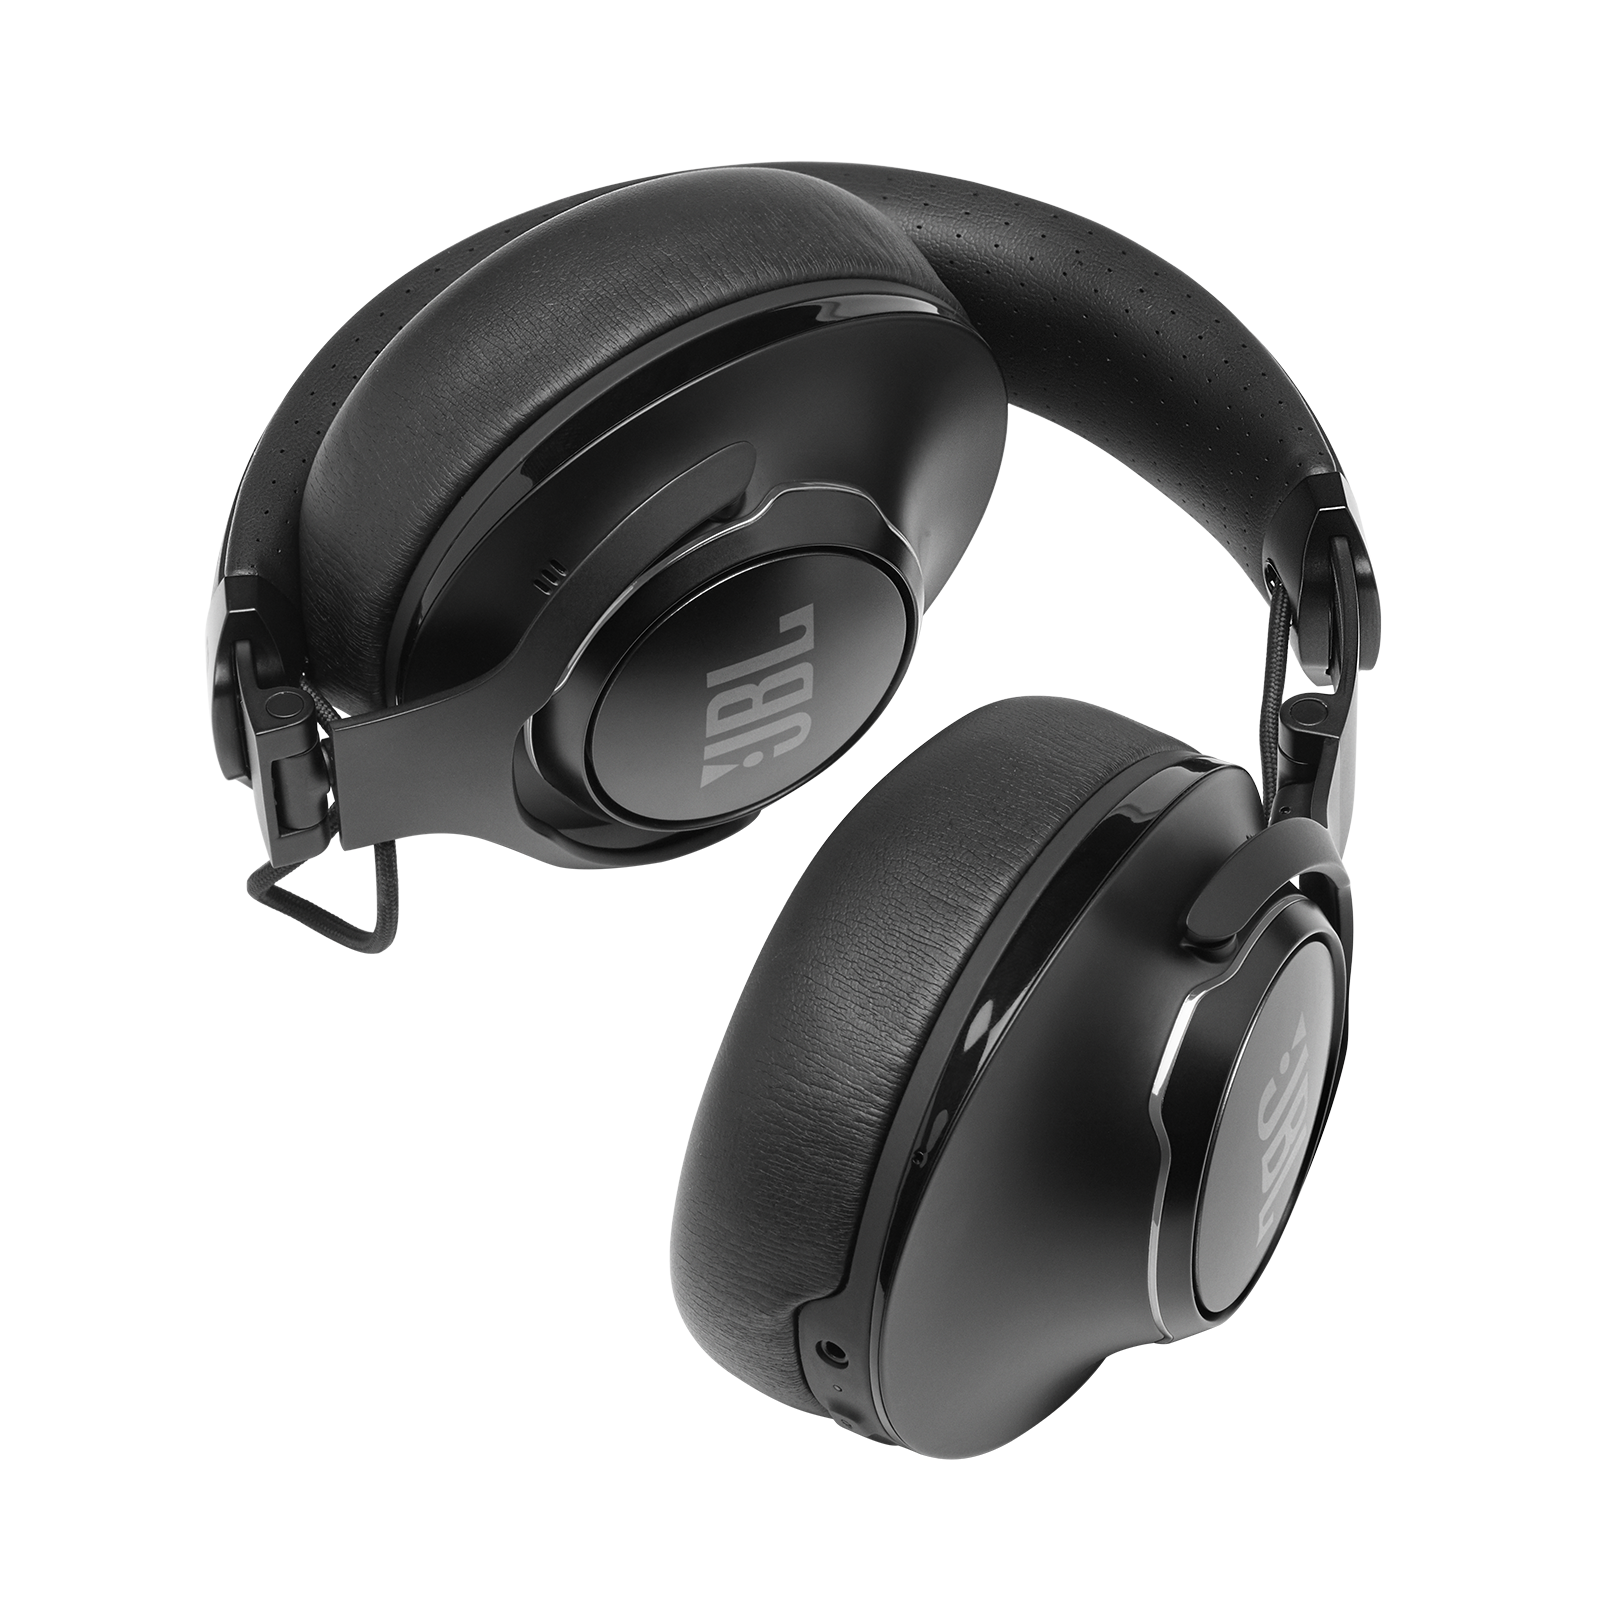 JBL CLUB 950NC - Black - Wireless over-ear noise cancelling headphones - Detailshot 4